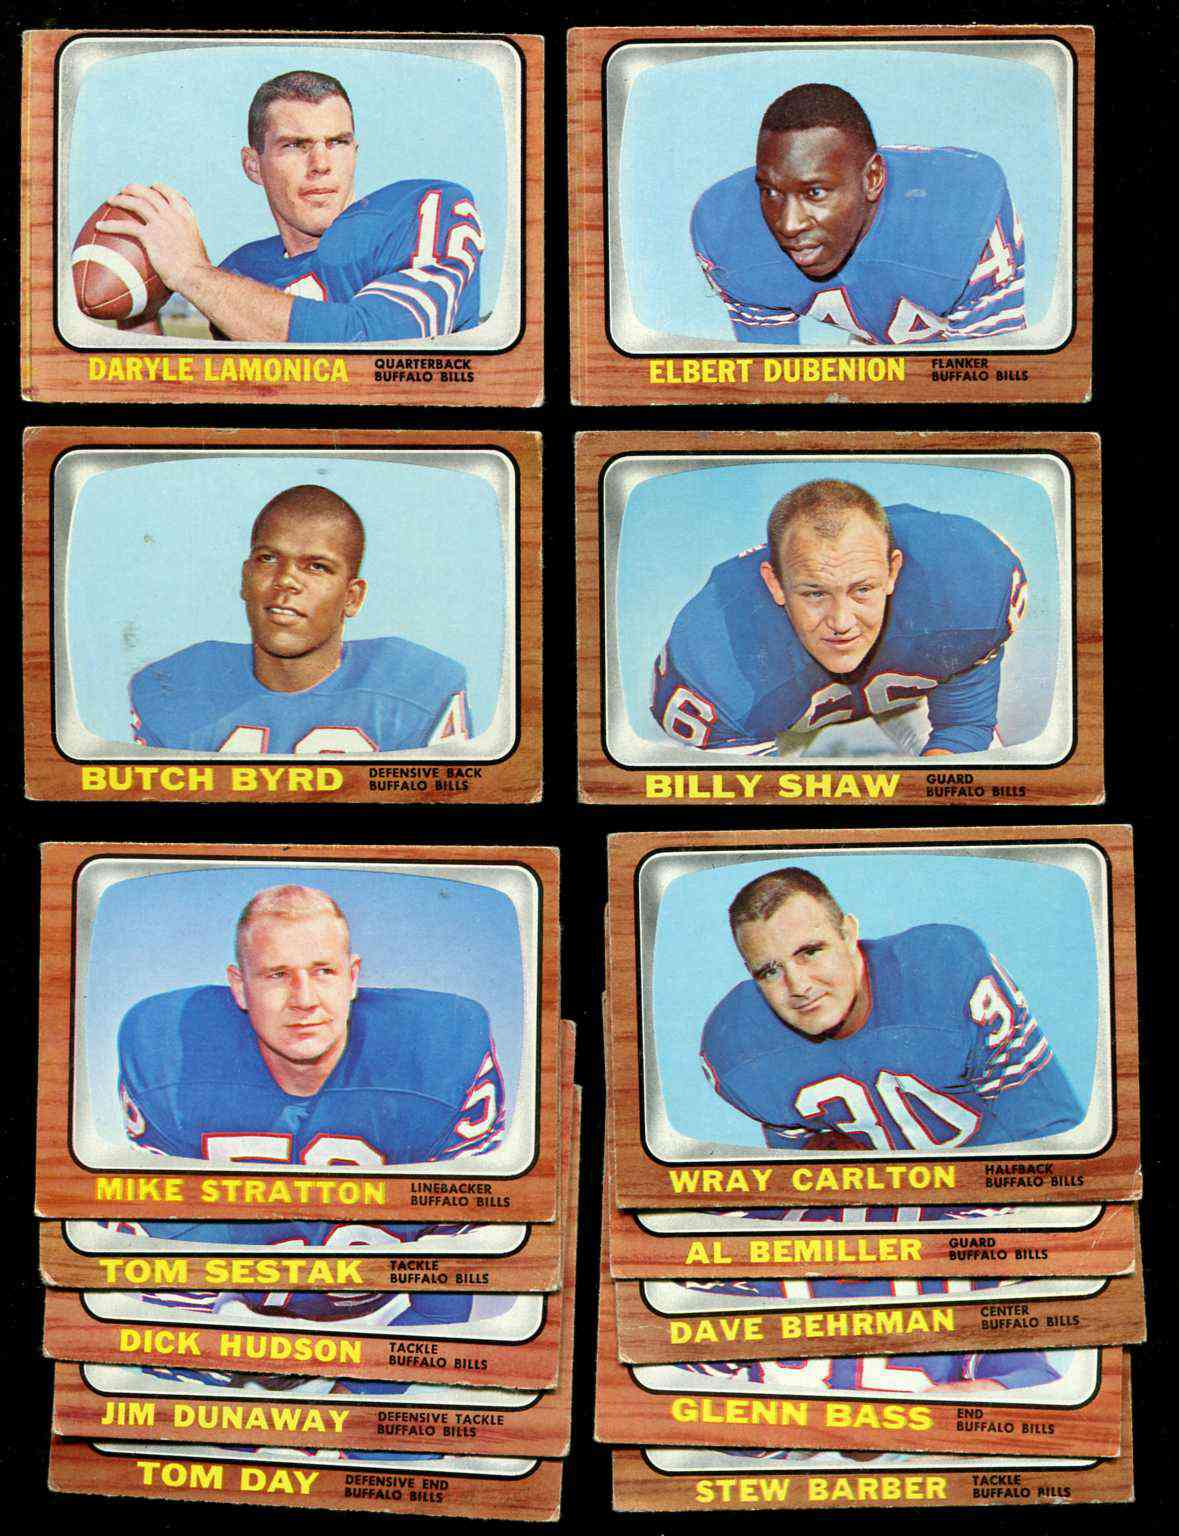 1966 Topps FB - BUFFALO BILLS Team Lot (7) cards [#z] w/Daryle Lamonica ... Football cards value